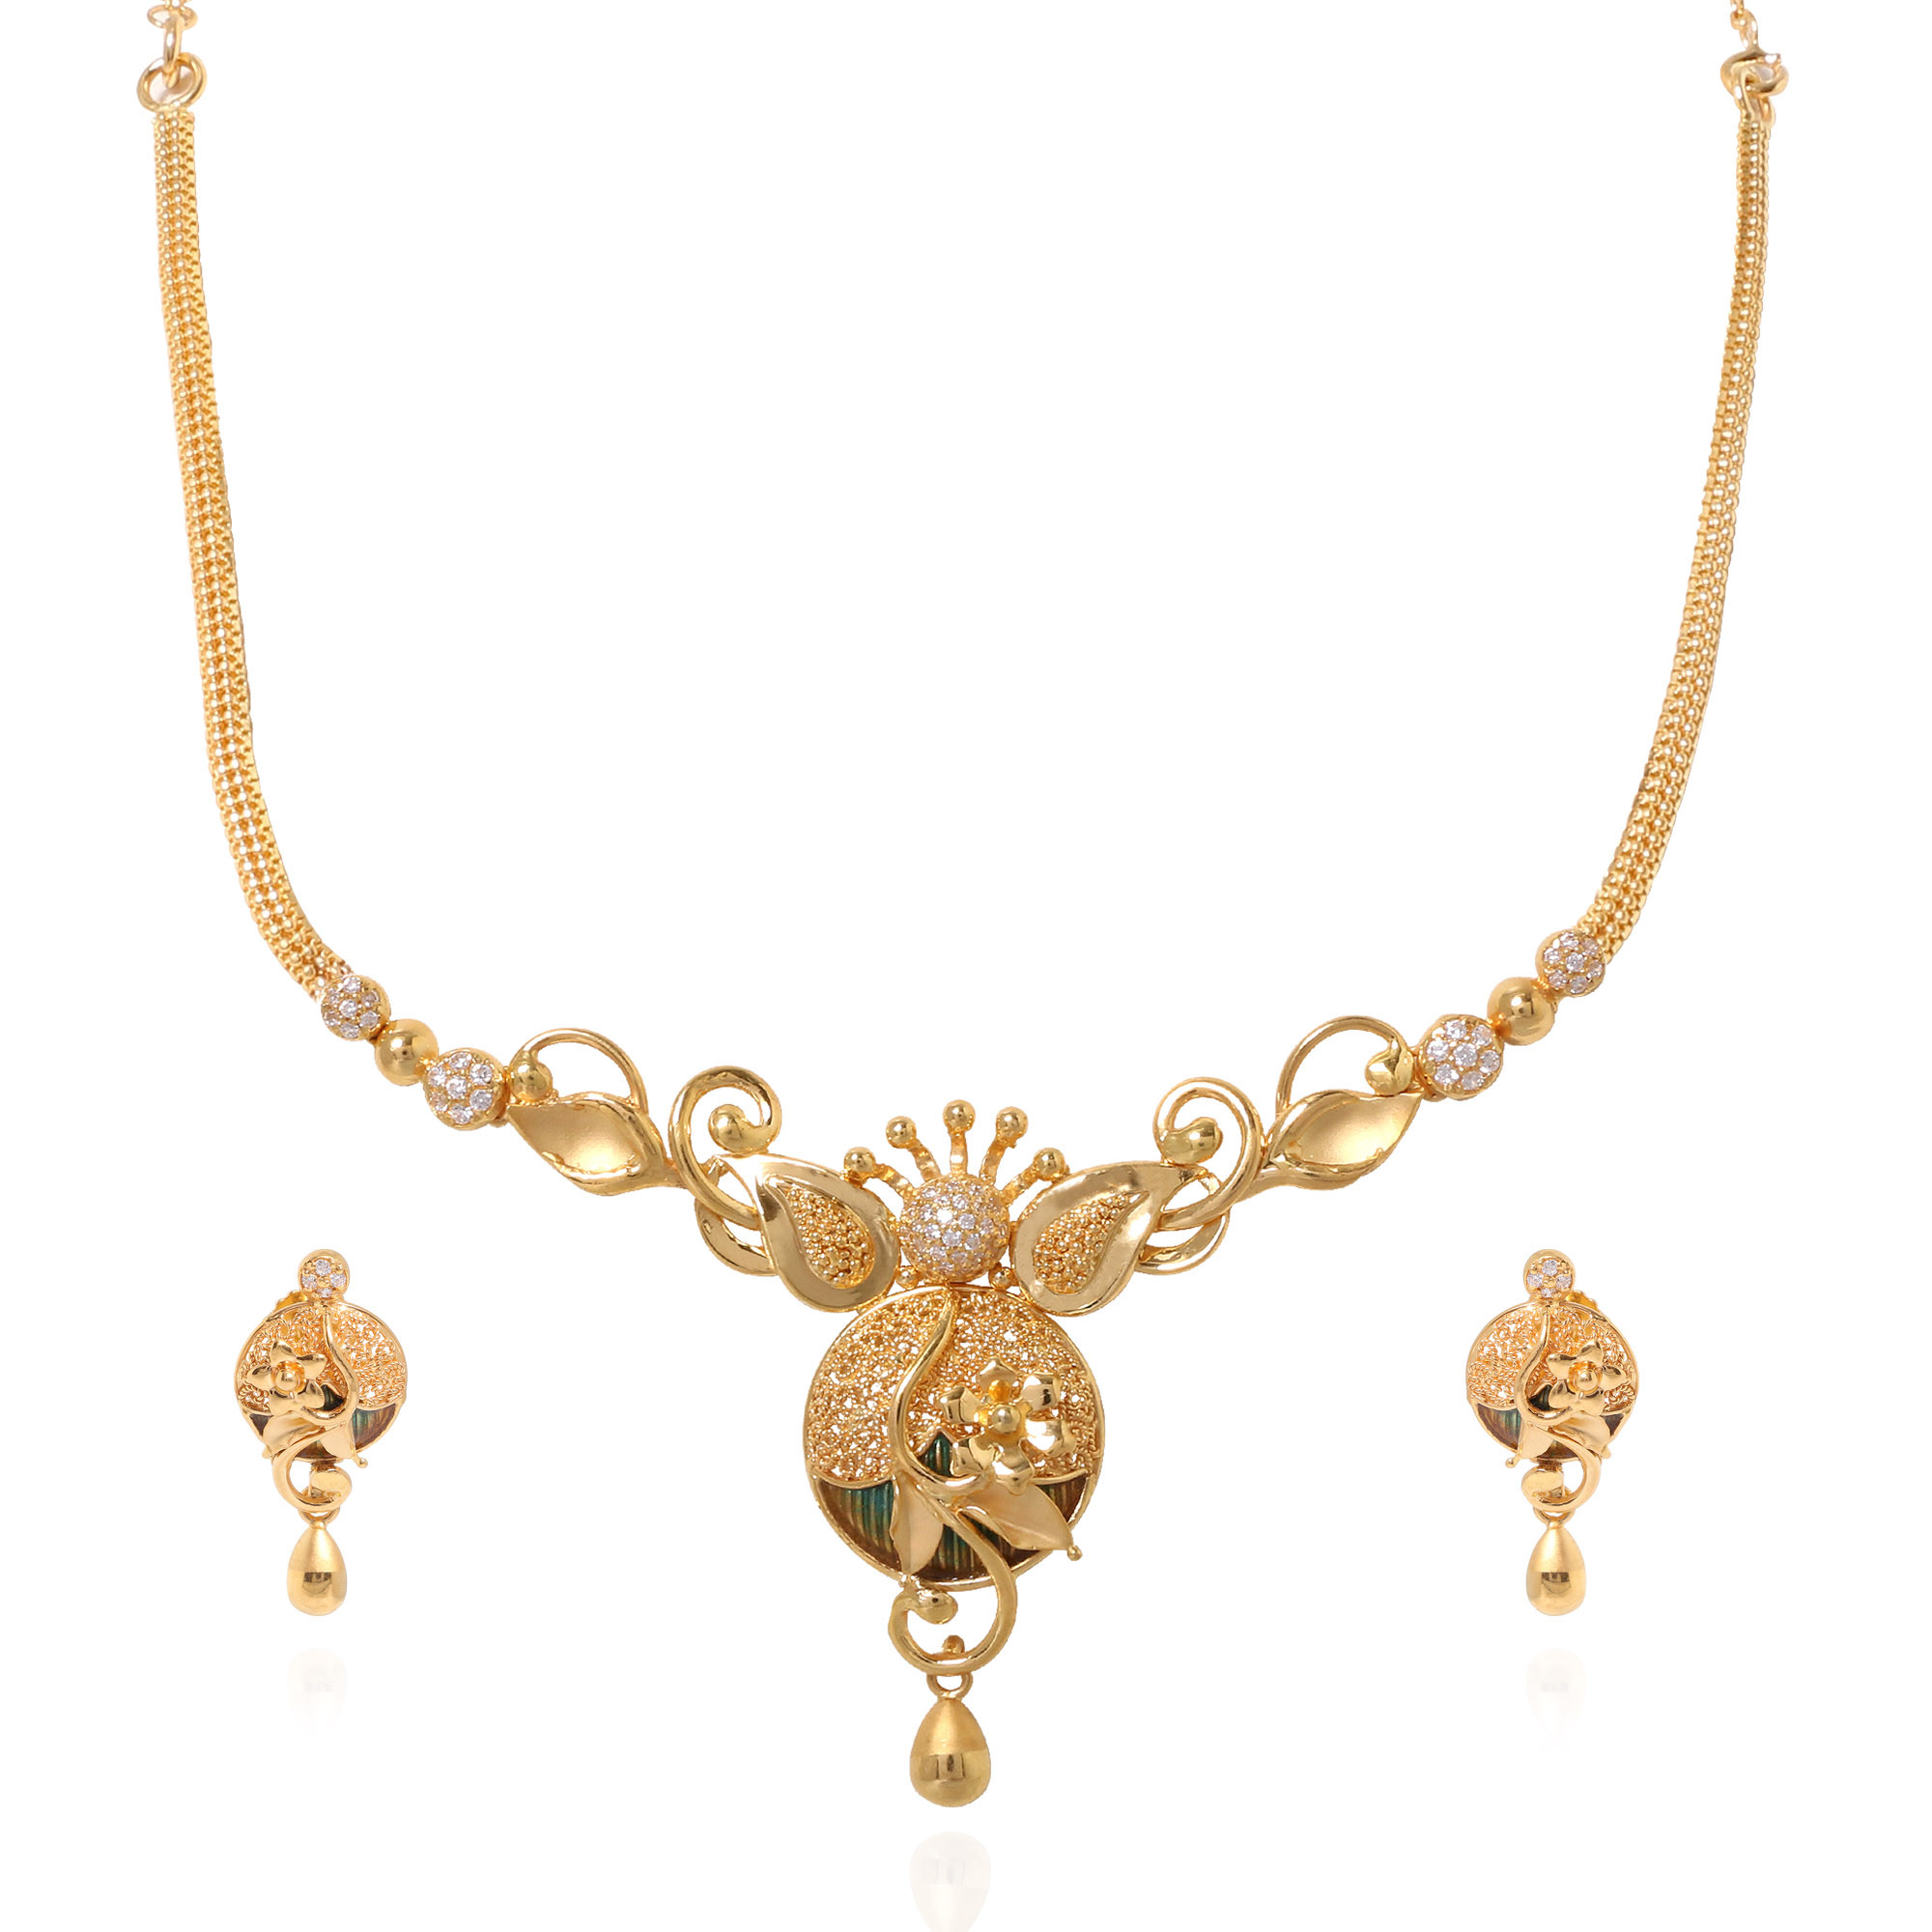 Stylish Lateef Officewear Gold Necklace